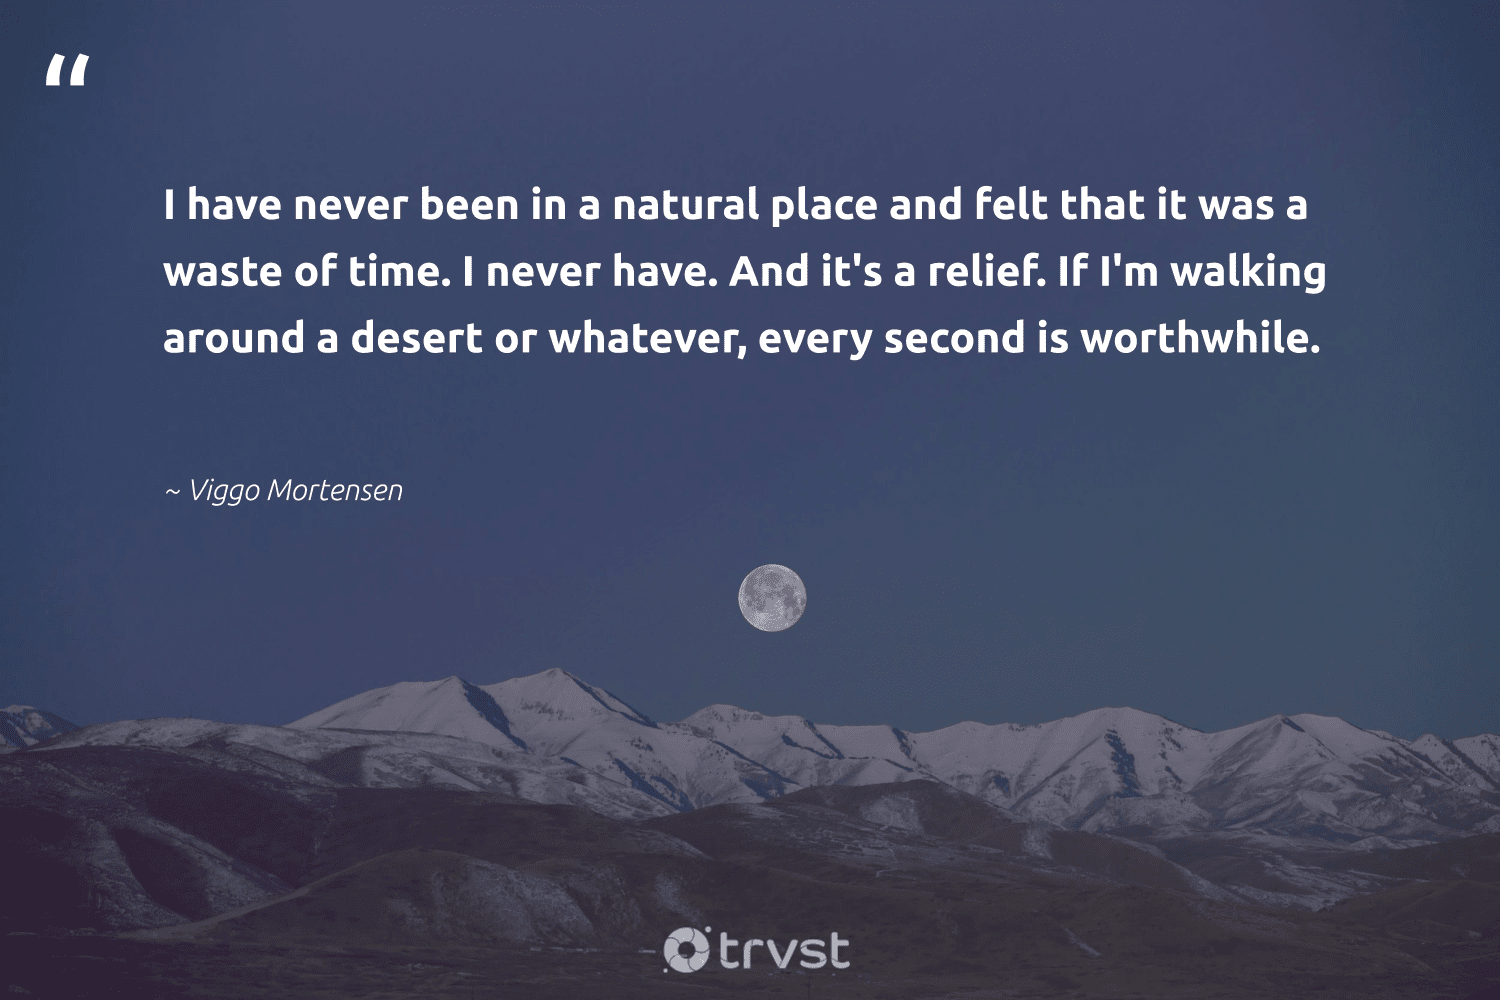 """""""I have never been in a natural place and felt that it was a waste of time. I never have. And it's a relief. If I'm walking around a desert or whatever, every second is worthwhile.""""  - Viggo Mortensen #trvst #quotes #waste #natural #volunteer #impact #savetheplanet #collectiveaction #ecofriendly #dosomething #giveback #beinspired"""